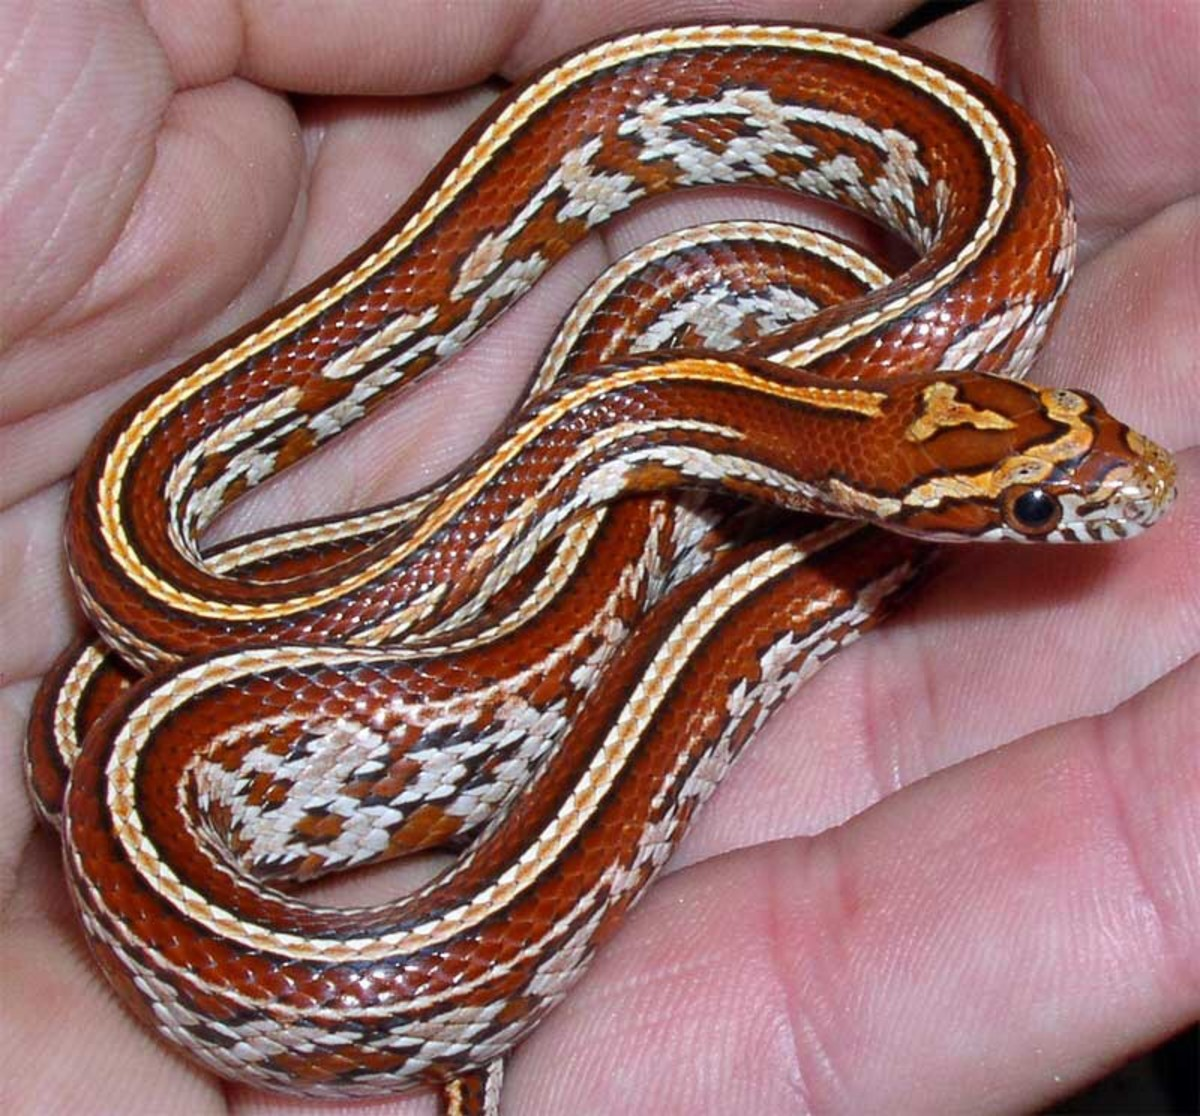 Signs of The Most Common Health Problems in Pet Snakes and How To Treat Them.